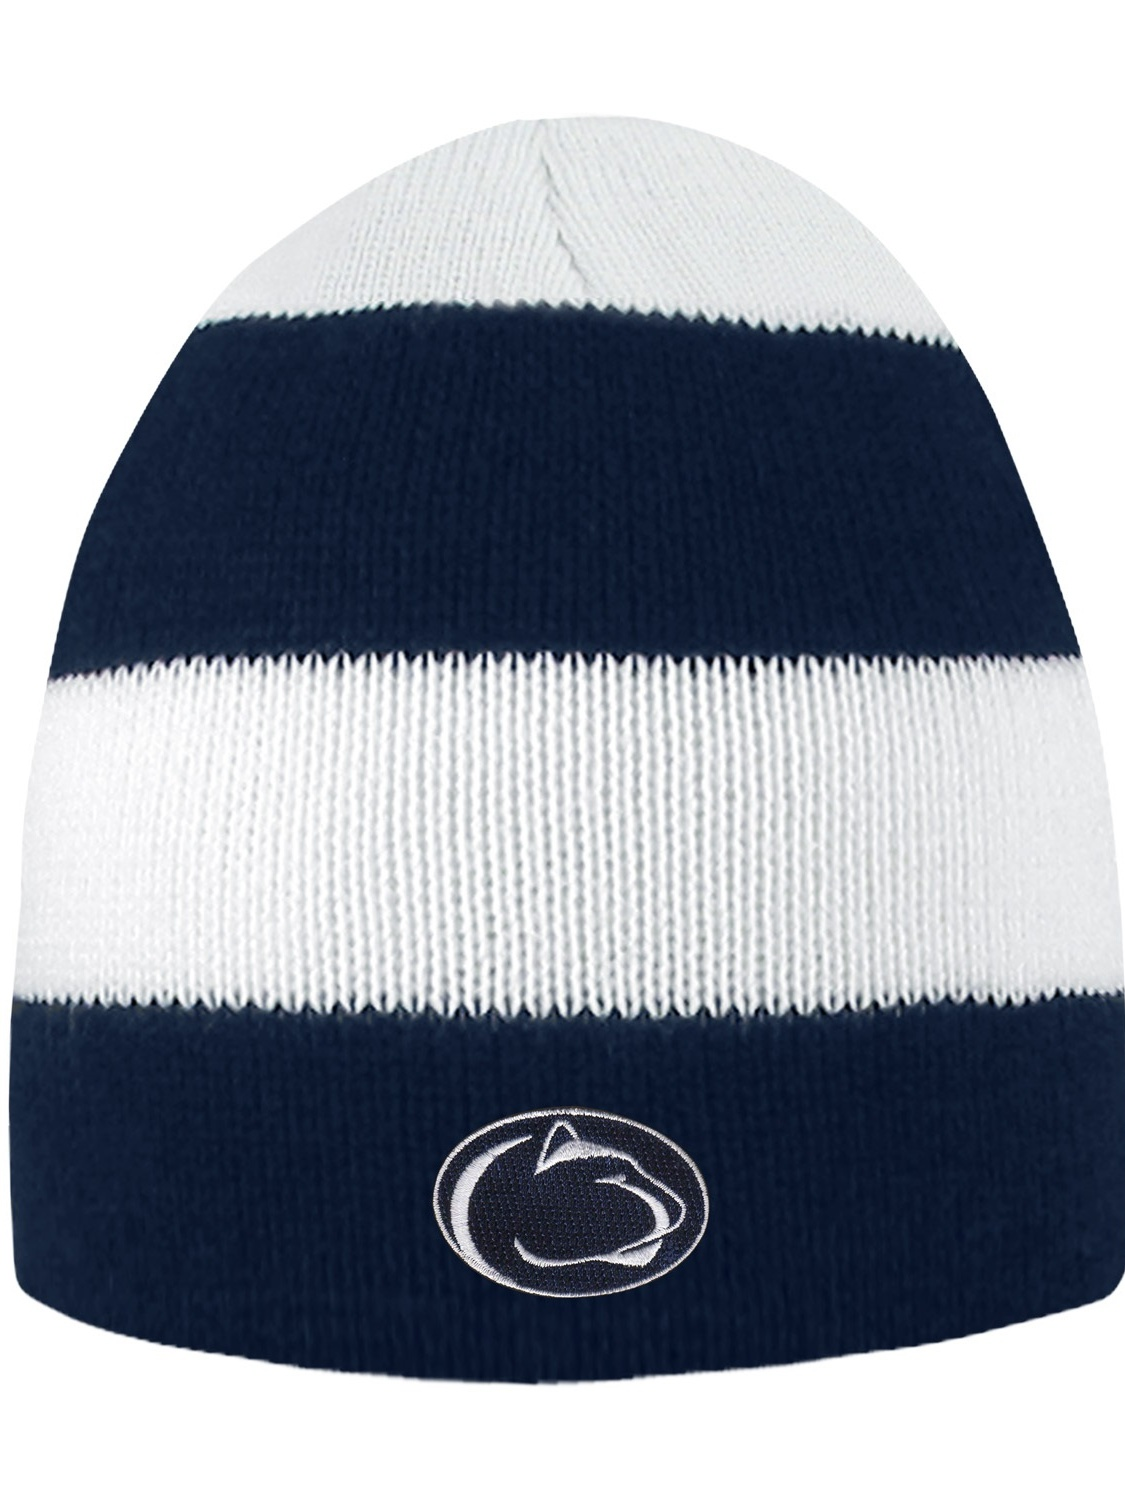 Penn State University Rugby Striped Knit Beanie by